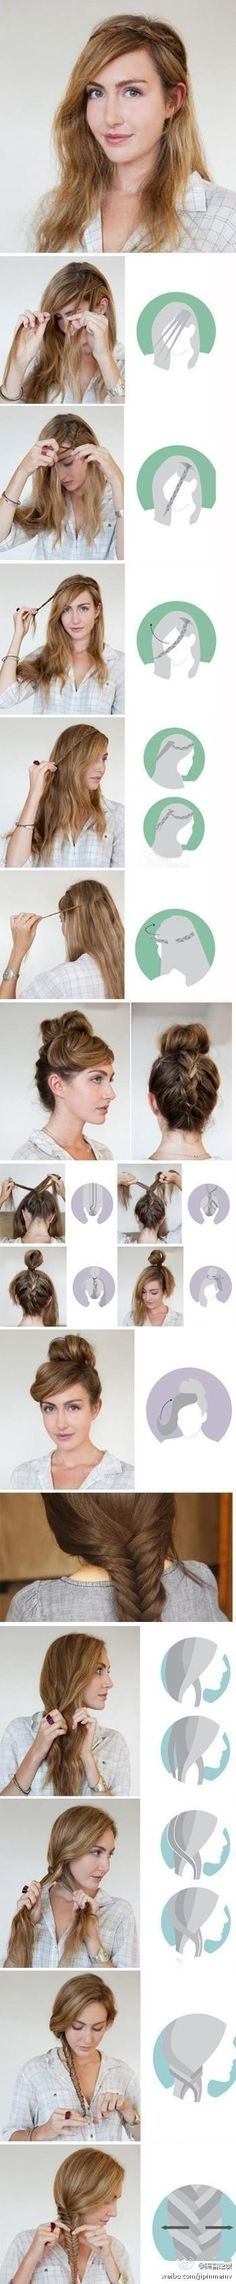 need to learn how to do this...not as easy as it looks im sure